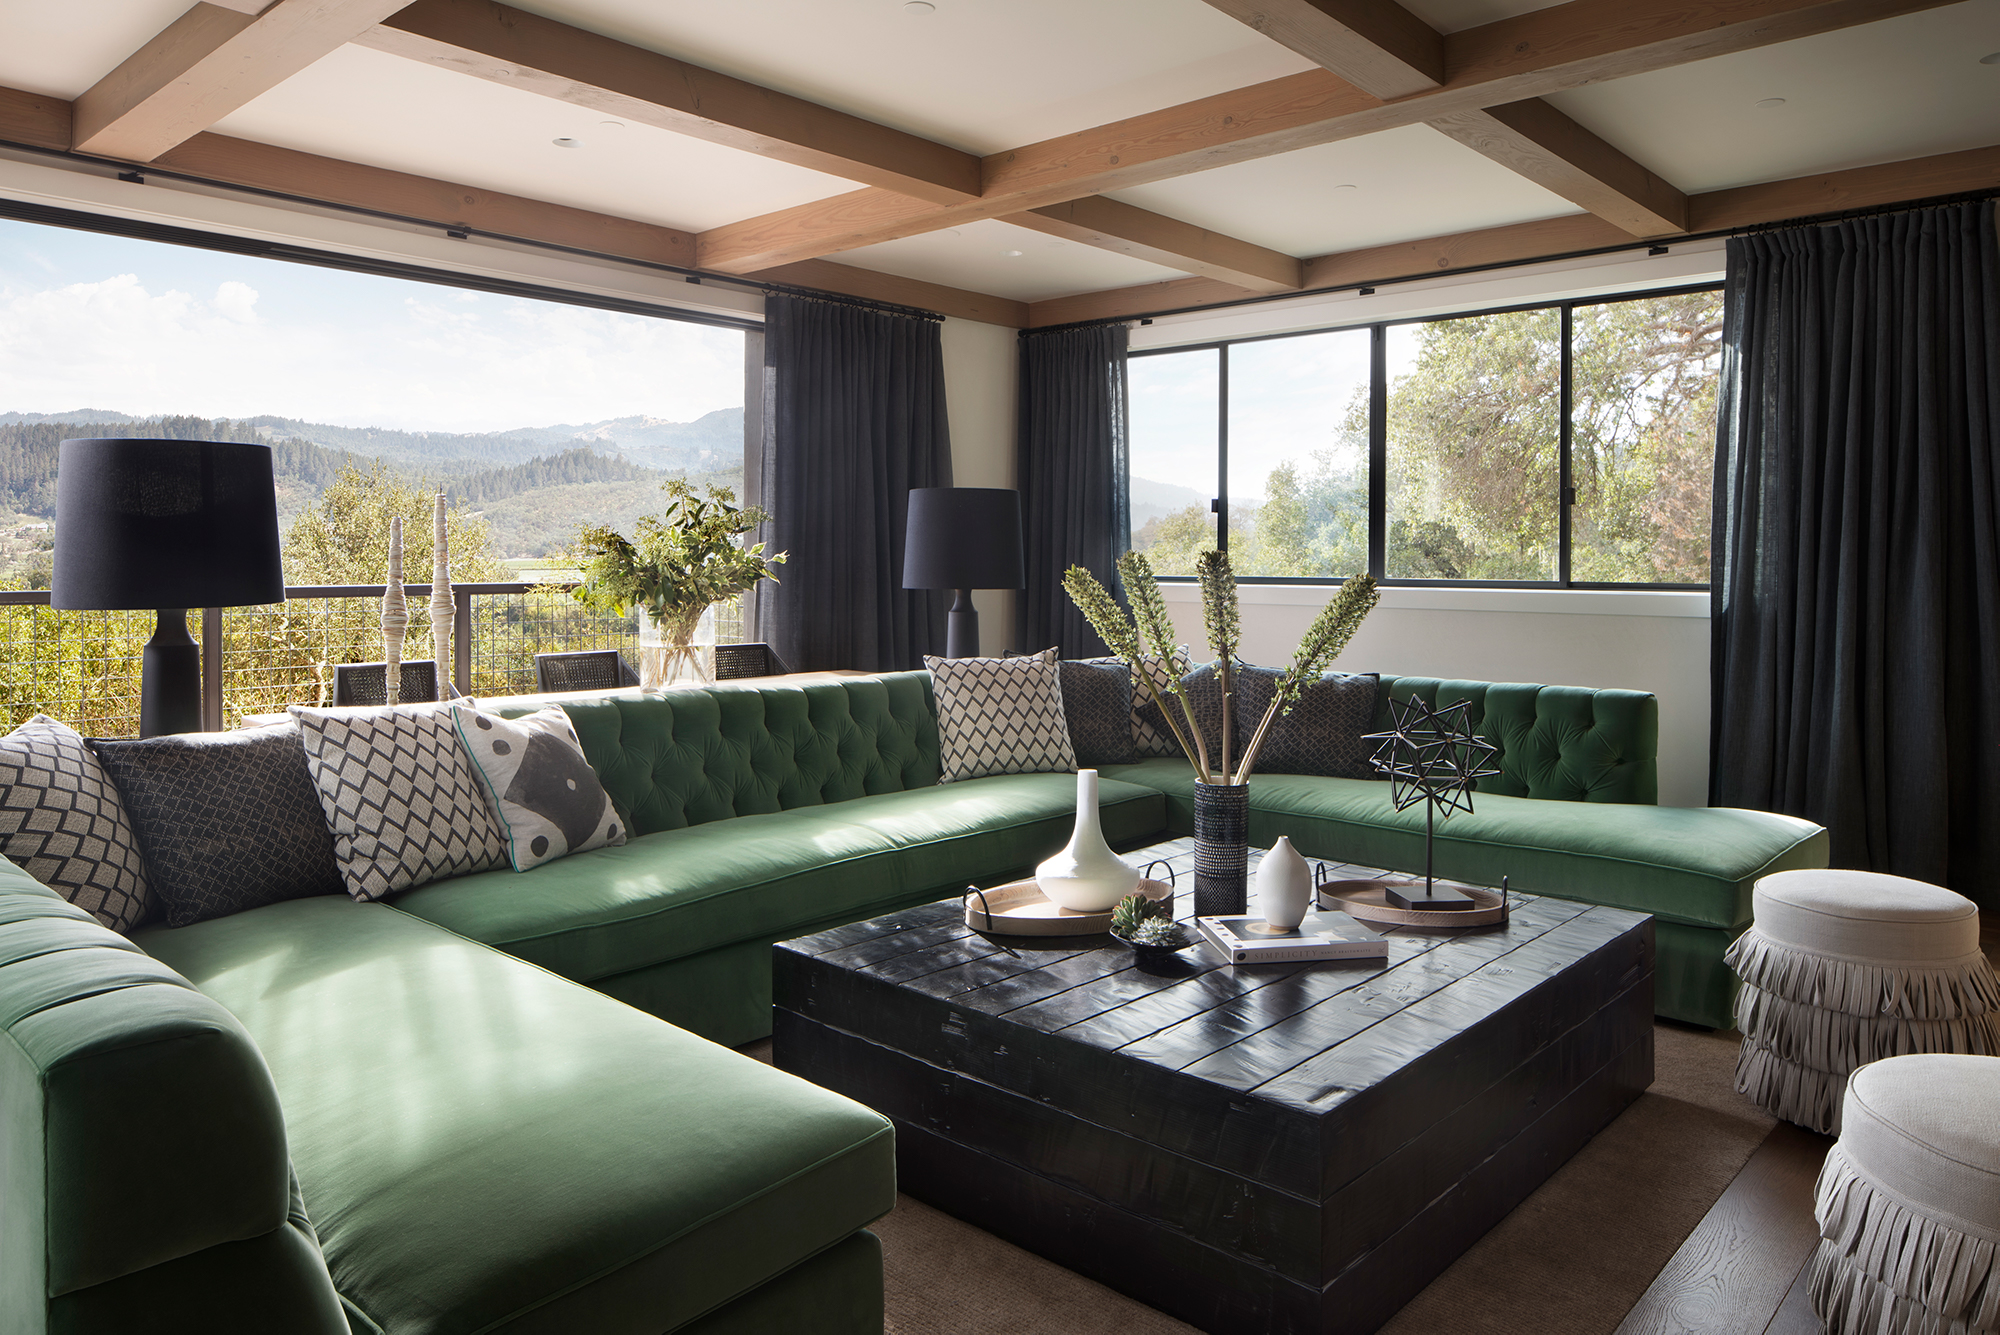 Jennifer_robins_interiors_projects_st_helena_IIII_Conn_15_HR_living_room_LR_couch